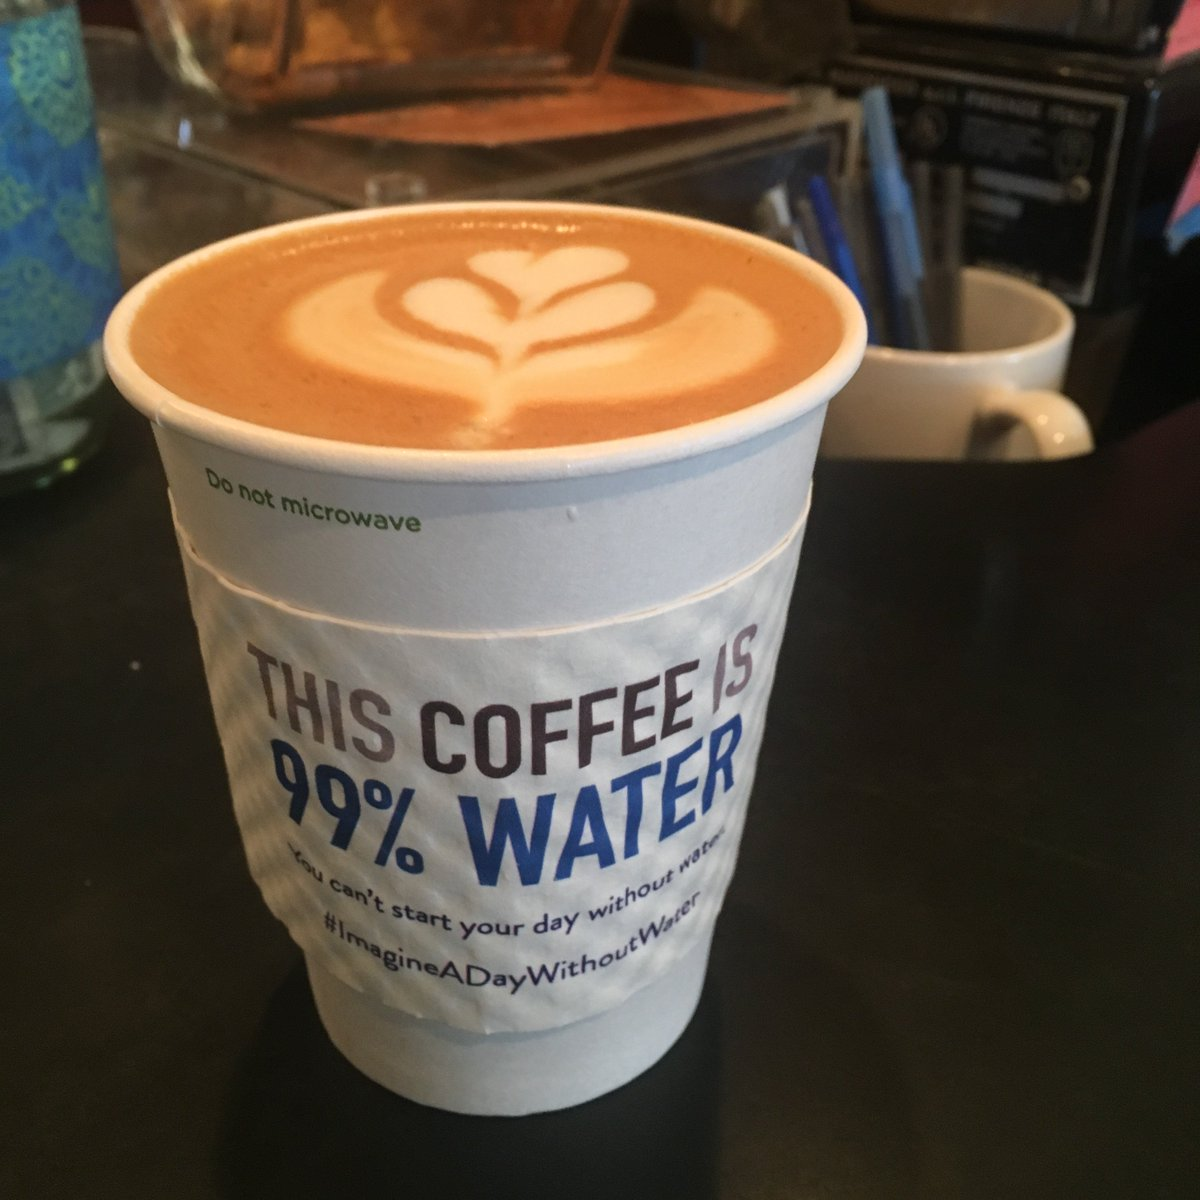 Thank you #KansasCity coffee shops for helping us #ImagineADayWithoutWater. You can&#39;t start your day without water! #ValueWater <br>http://pic.twitter.com/gyd507KPGm